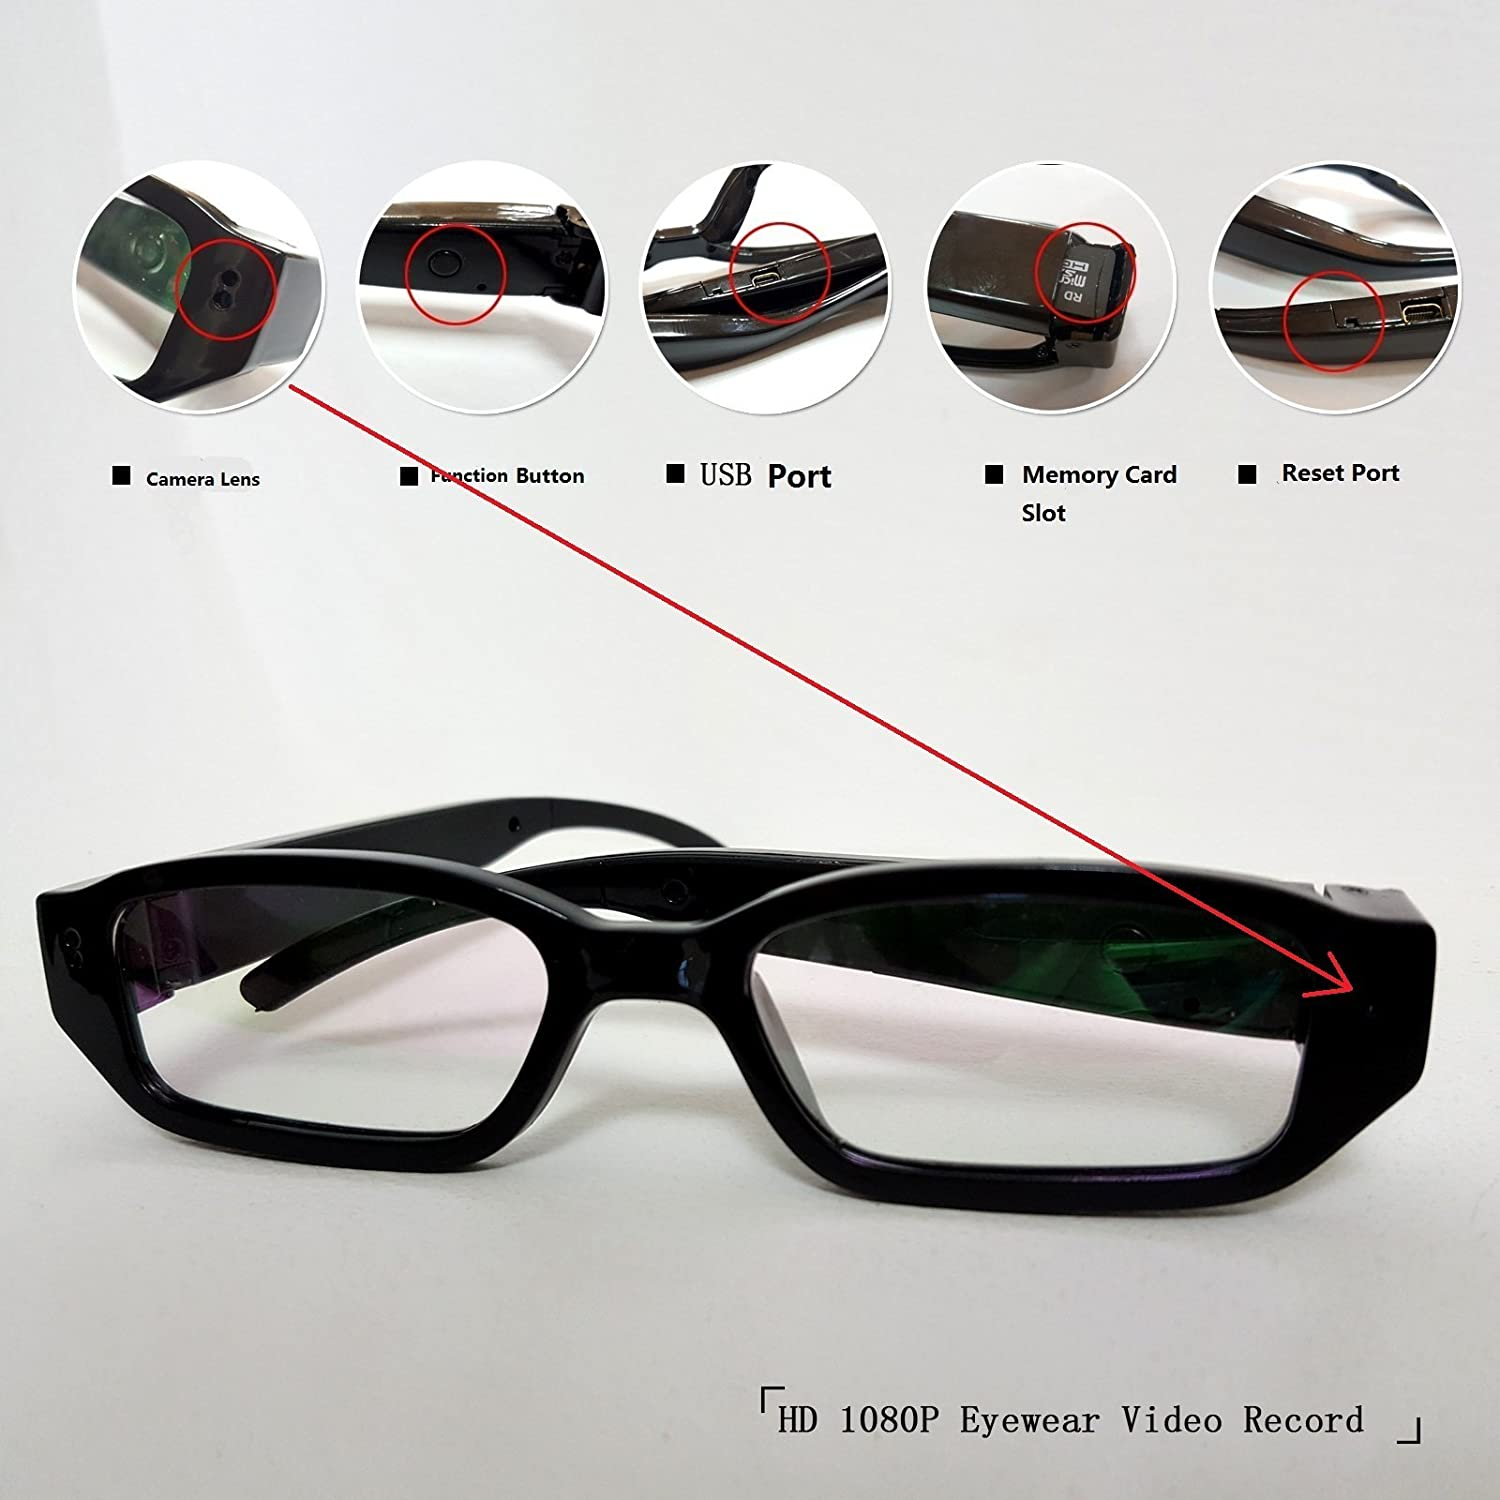 fb4ca82f215c4 Buy LDPmade Spy Camera Glasses Hidden Full HD 1080P 8G Eyeglasses Camcorder  with Video Taking of Spectacles Inspection for Halloween and Christmas  Online at ...